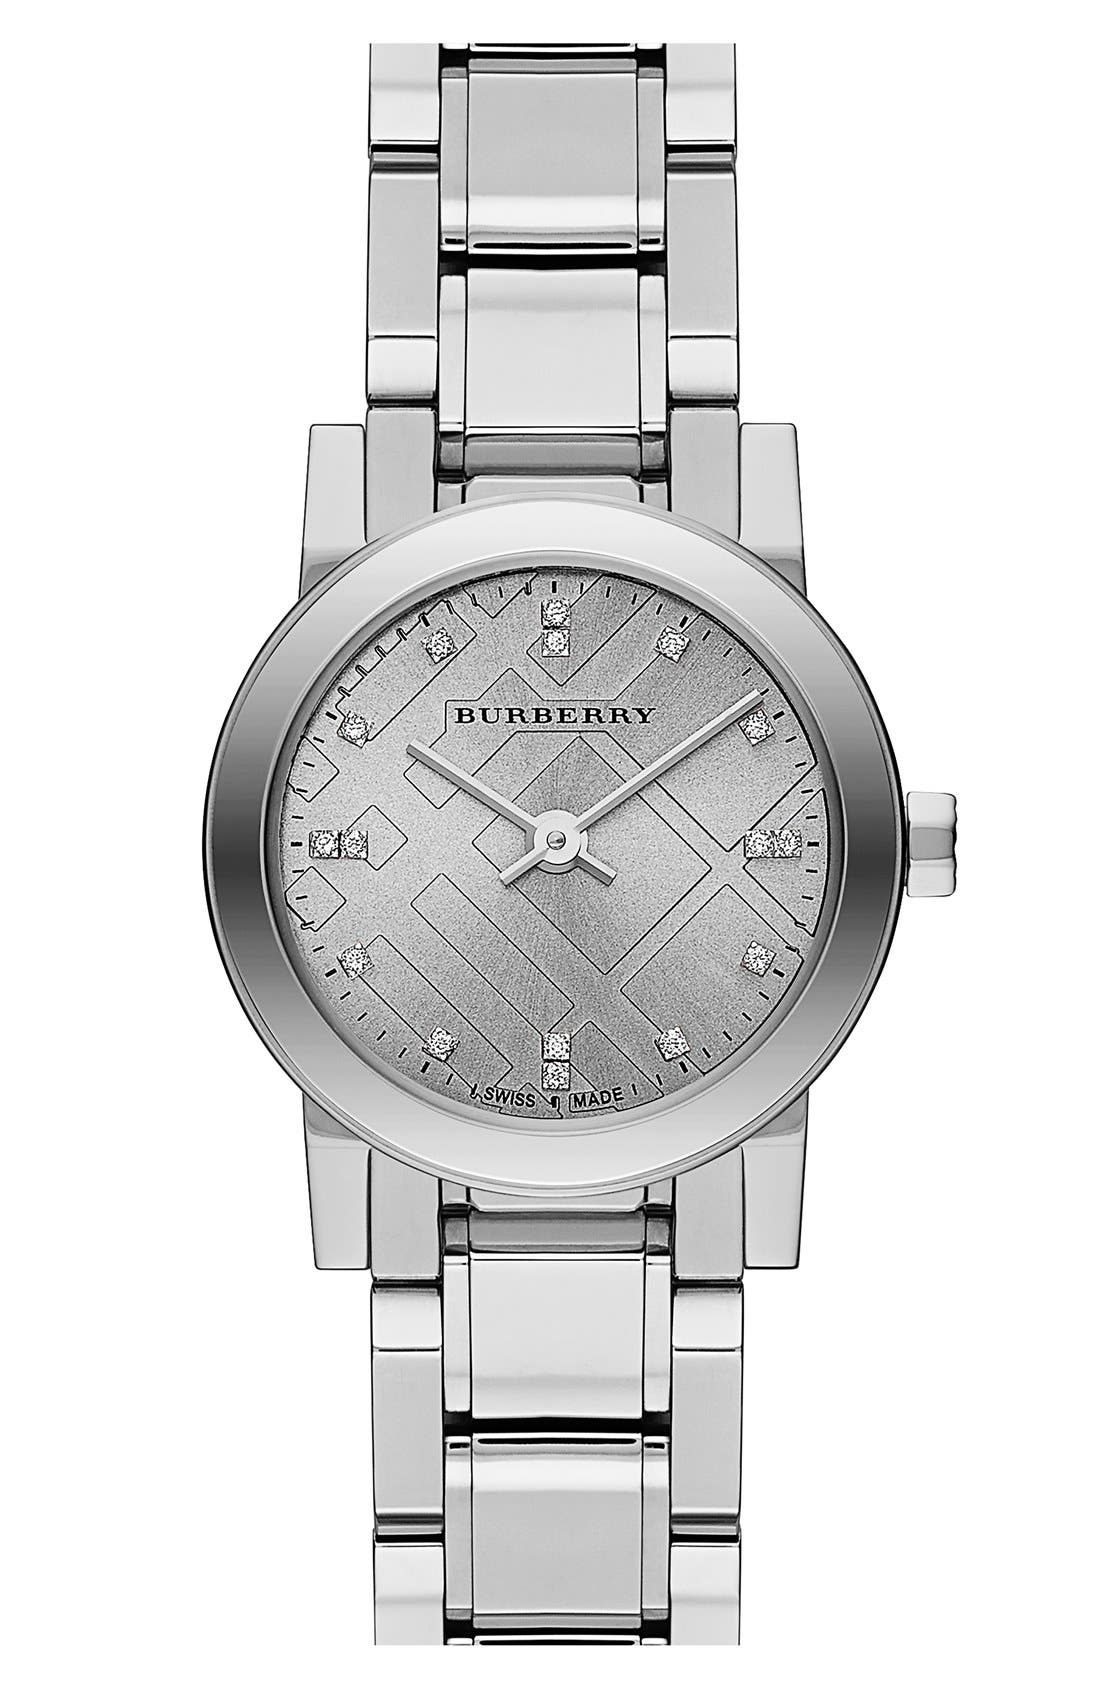 Alternate Image 1 Selected - Burberry 'New Classic' Small Diamond Dial Bracelet Watch, 26mm (Regular Retail Price: $695.00)